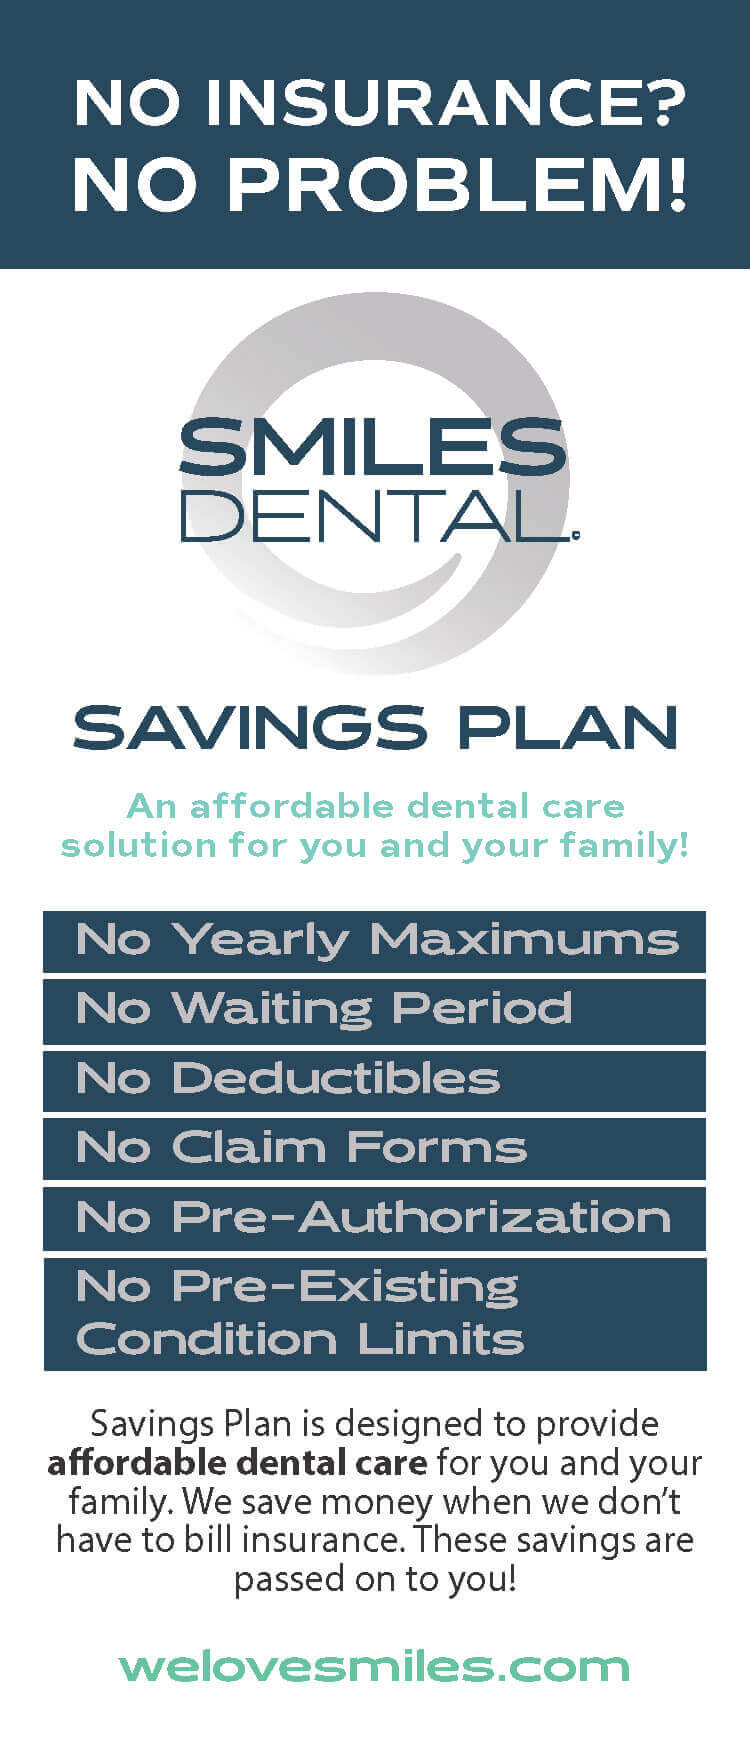 NO INSURANCE? NO PROBLEM! Smiles Dental SAVINGS PLAN: An affordable dental care solution for you and your family! No Yearly Maximums – No Waiting Period - No Deductibles - No Claim Forms - No Pre-Authorization - No Pre-Existing Condition Limits. Savings Plan is designed to provide affordable dental care for you and your family. We save money when we don't have to bill insurance. These savings are passed on to you!